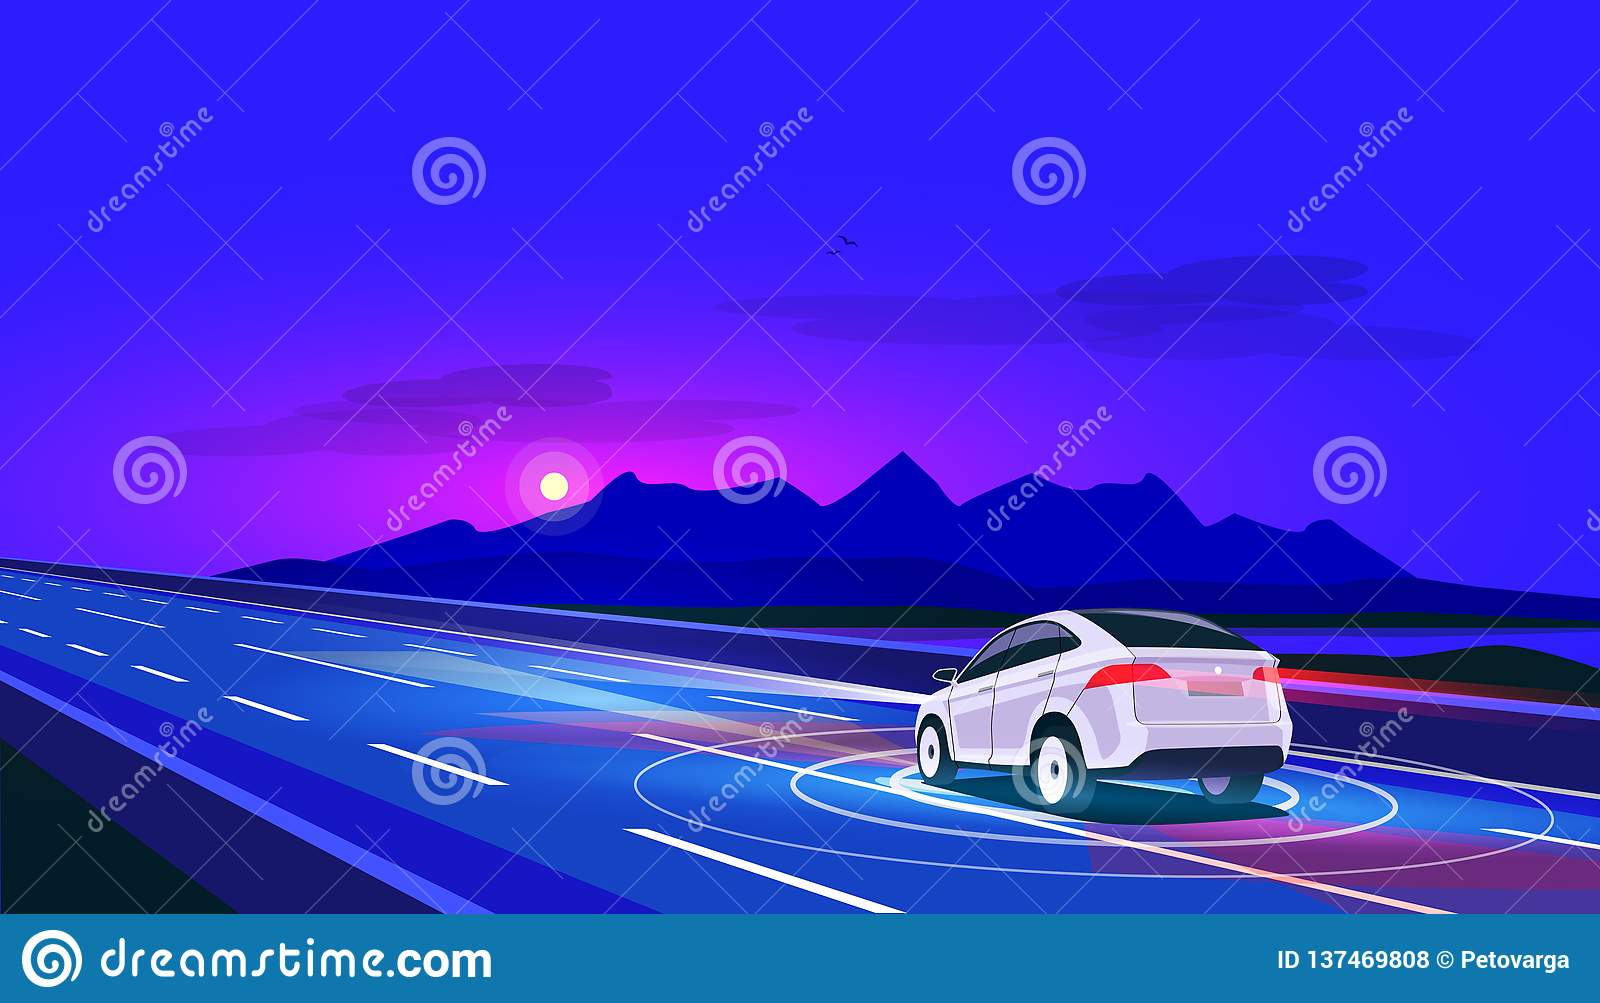 Smart Autonomous Driverless Electric Car Driving on Road at Night with Mountain Landscape